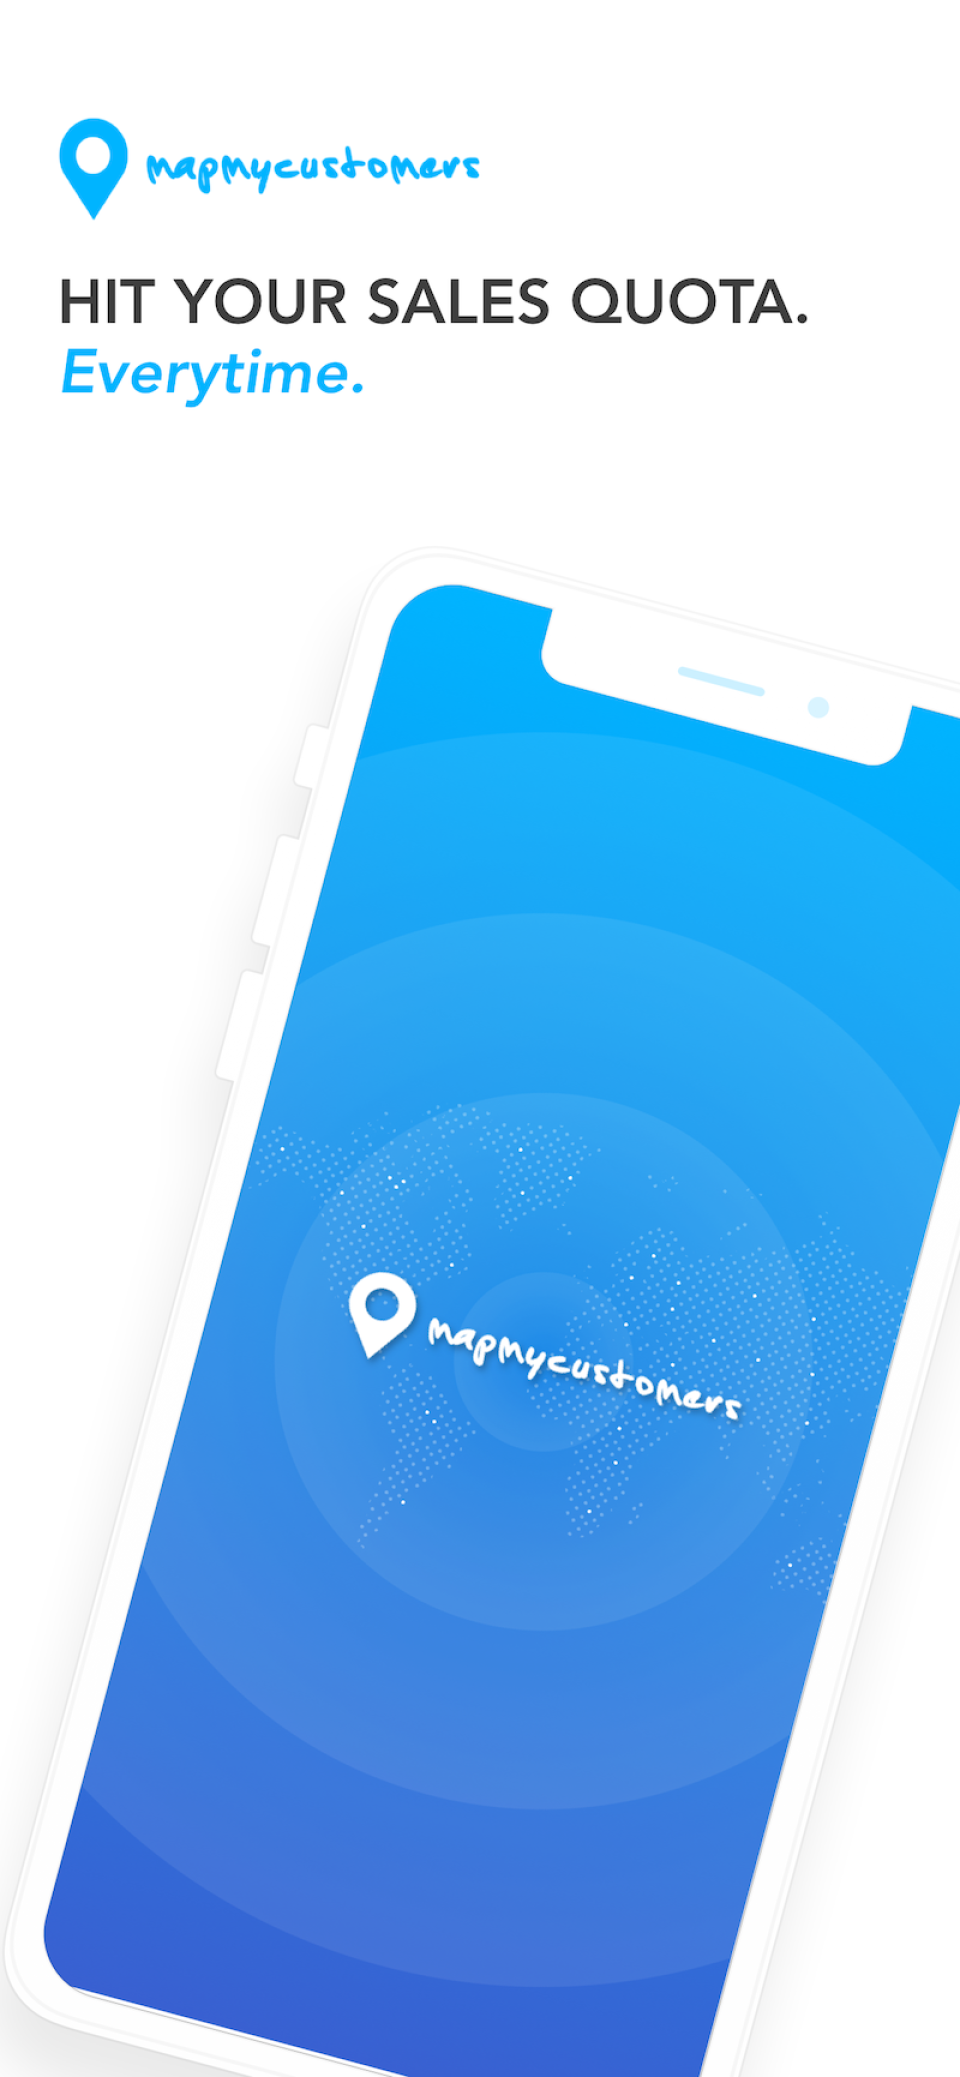 Map My Customers Pricing, Cost & Reviews - Capterra Australia Map My Customers on would map, co map, art that is a map, heart map, future earth changes map, find map, personal systems map, no map, bing map, tv map, can map, ai map, it's map, get map, first map, wo map, nz map, oh map, india map, gw map,